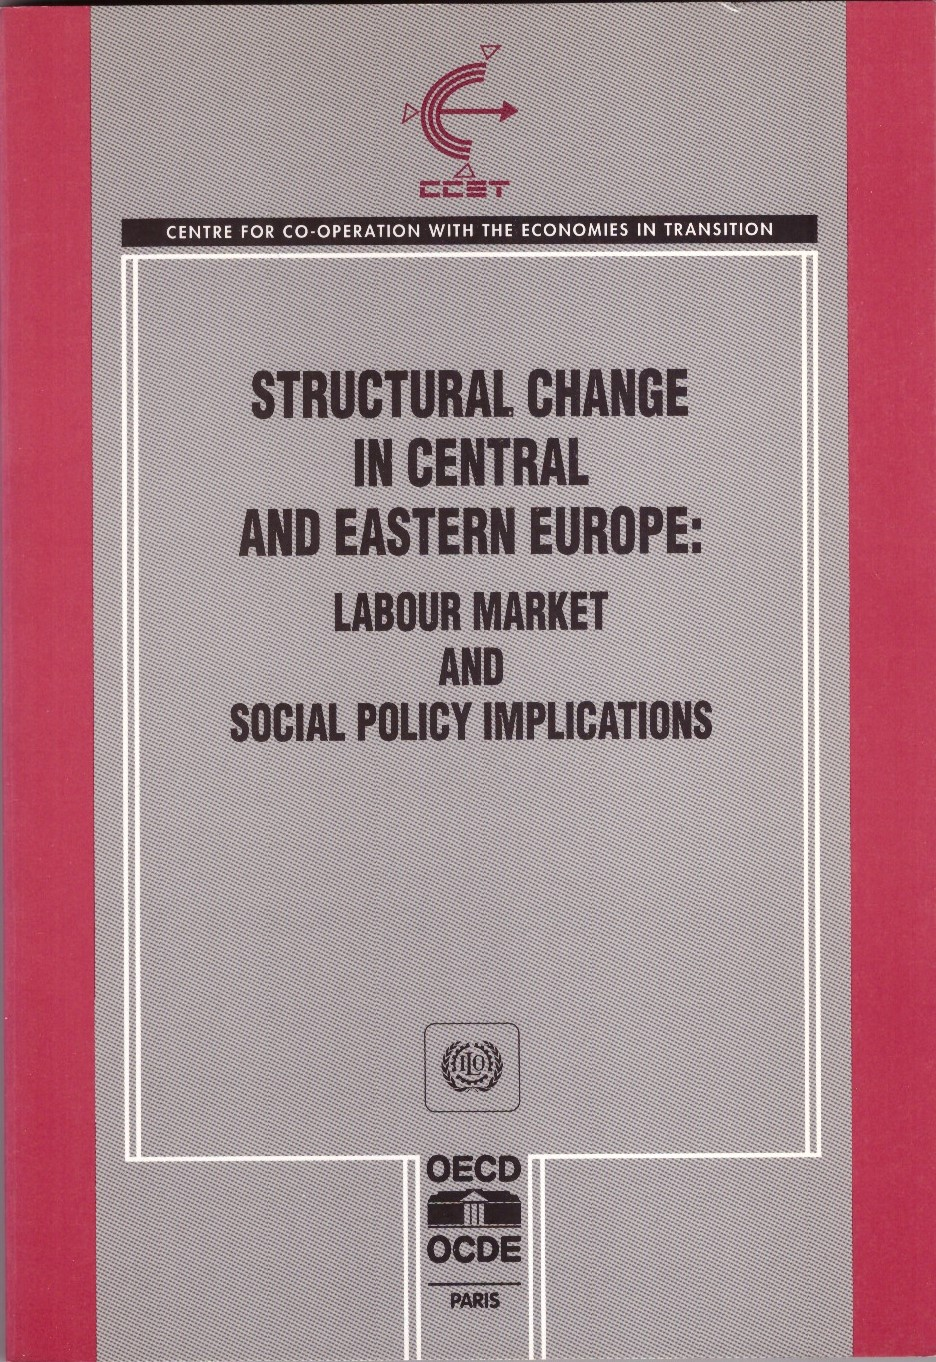 Structural Change in Central and Eastern Europe: Labour Market and Social Policy Implications , edited with G. Fischer (Paris: OECD, 1993).   Translations   ●   Details